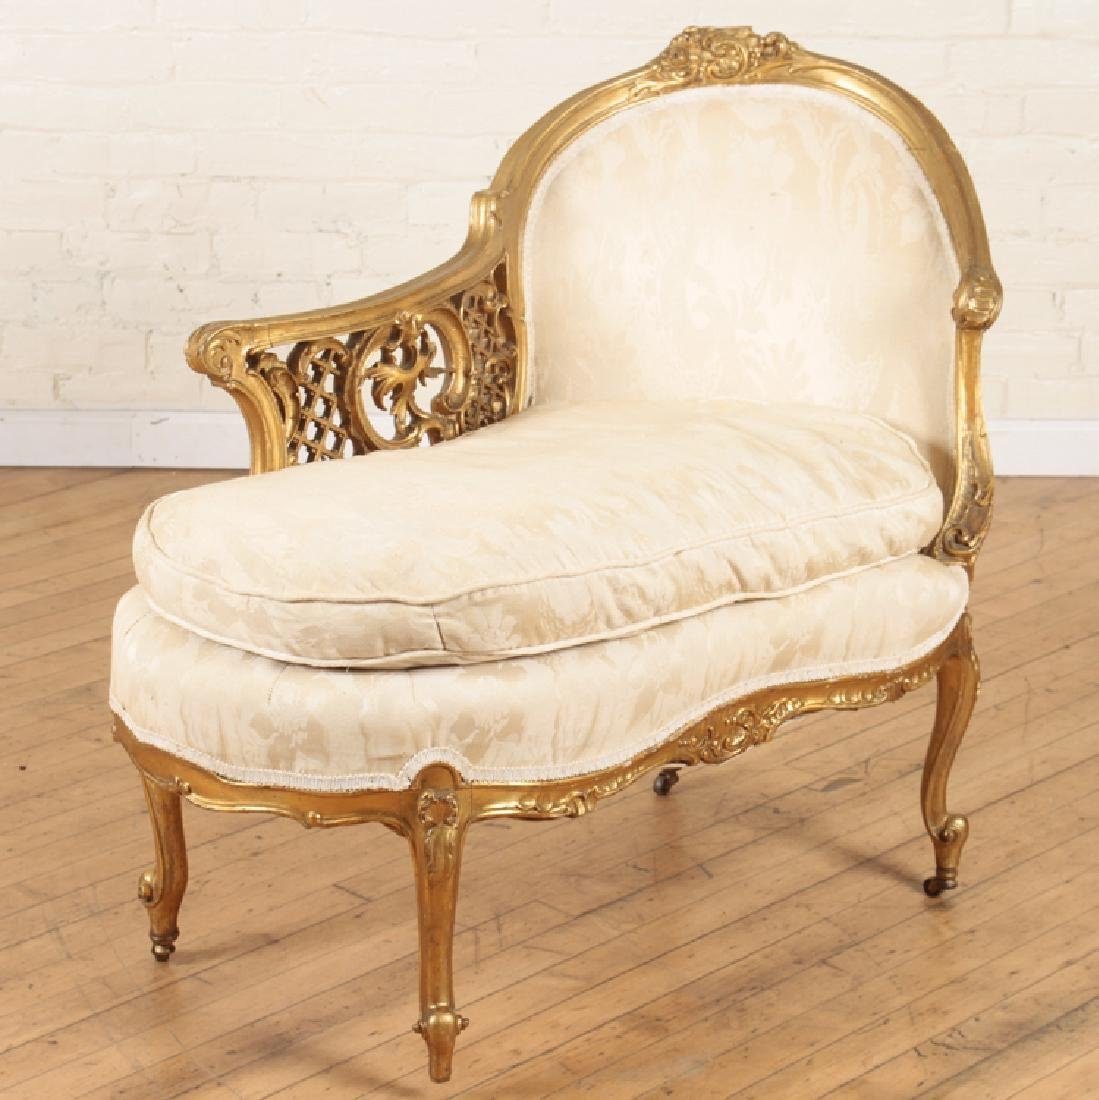 19TH CENT. GILTWOOD CARVED LOUIS XV CHAISE LOUNGE - 2